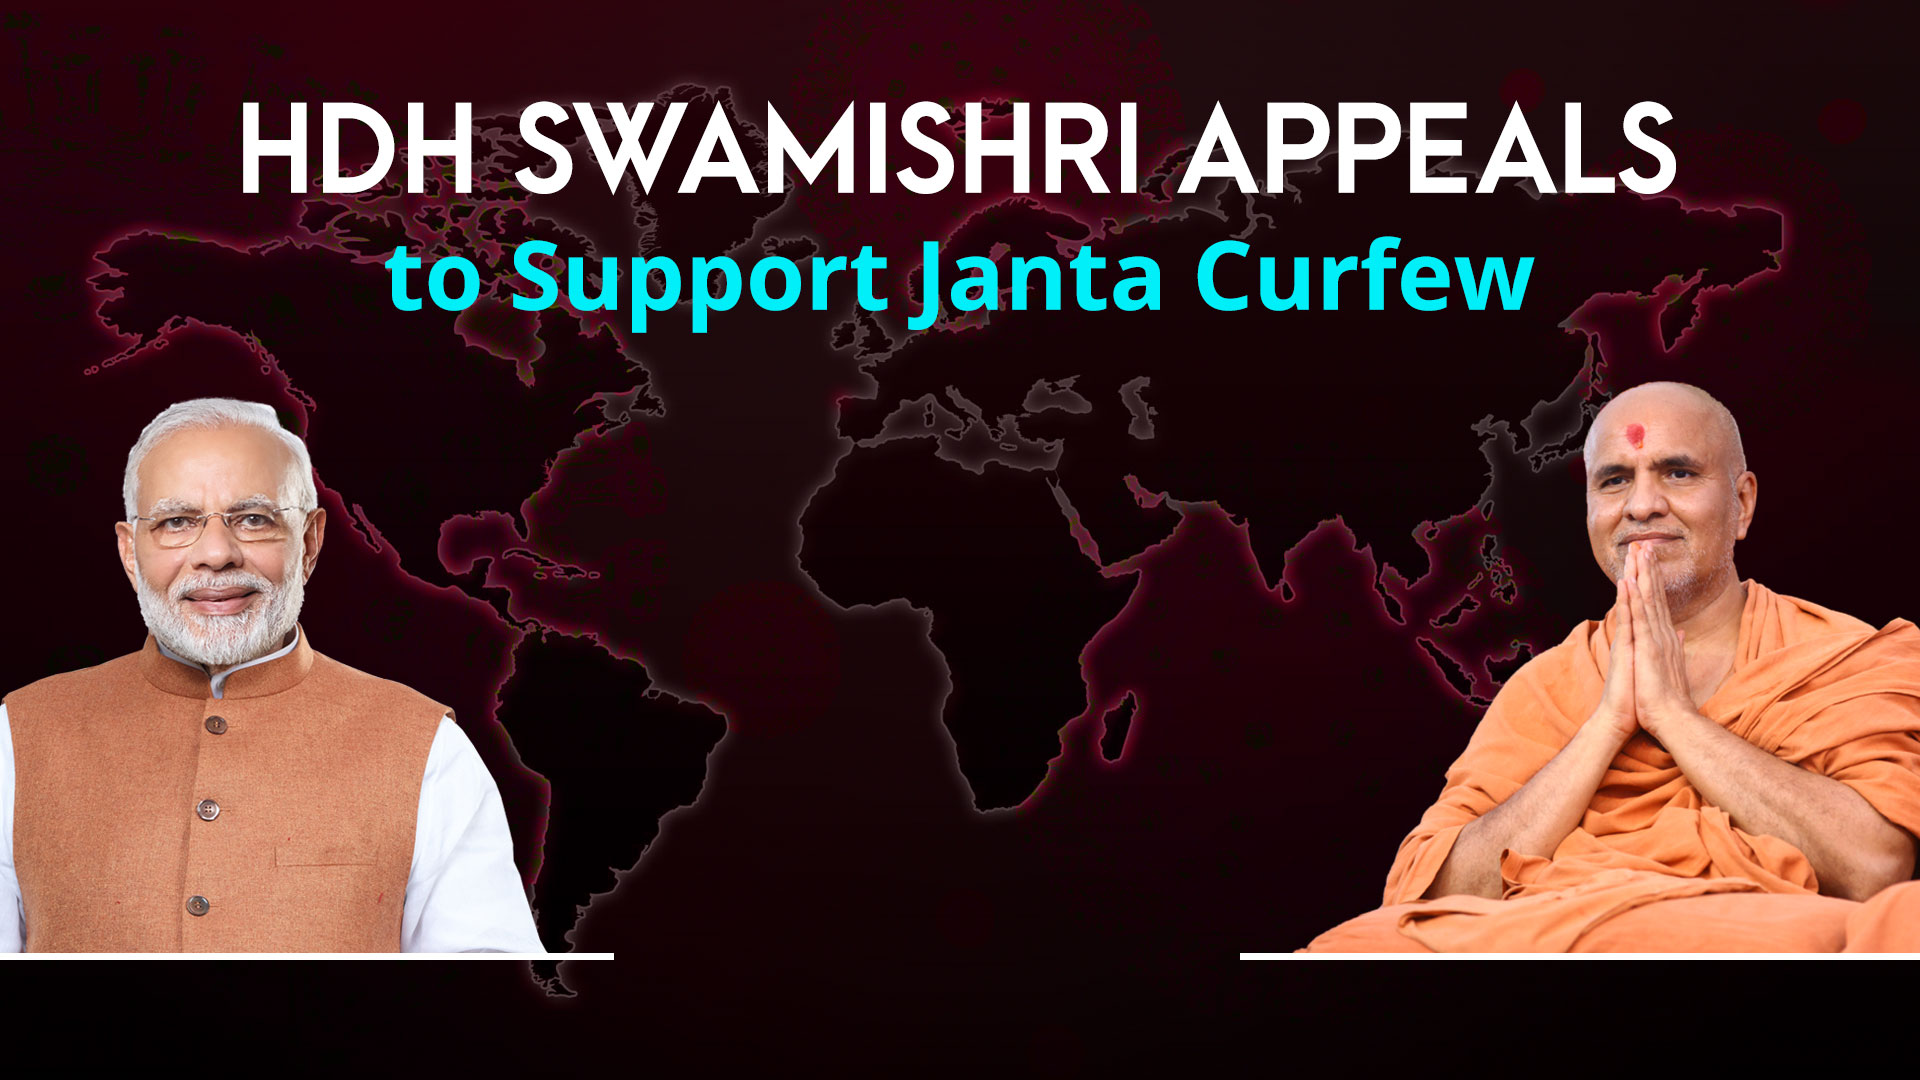 COVID-19 | HDH Swamishri Appeals to Support Janta Curfew